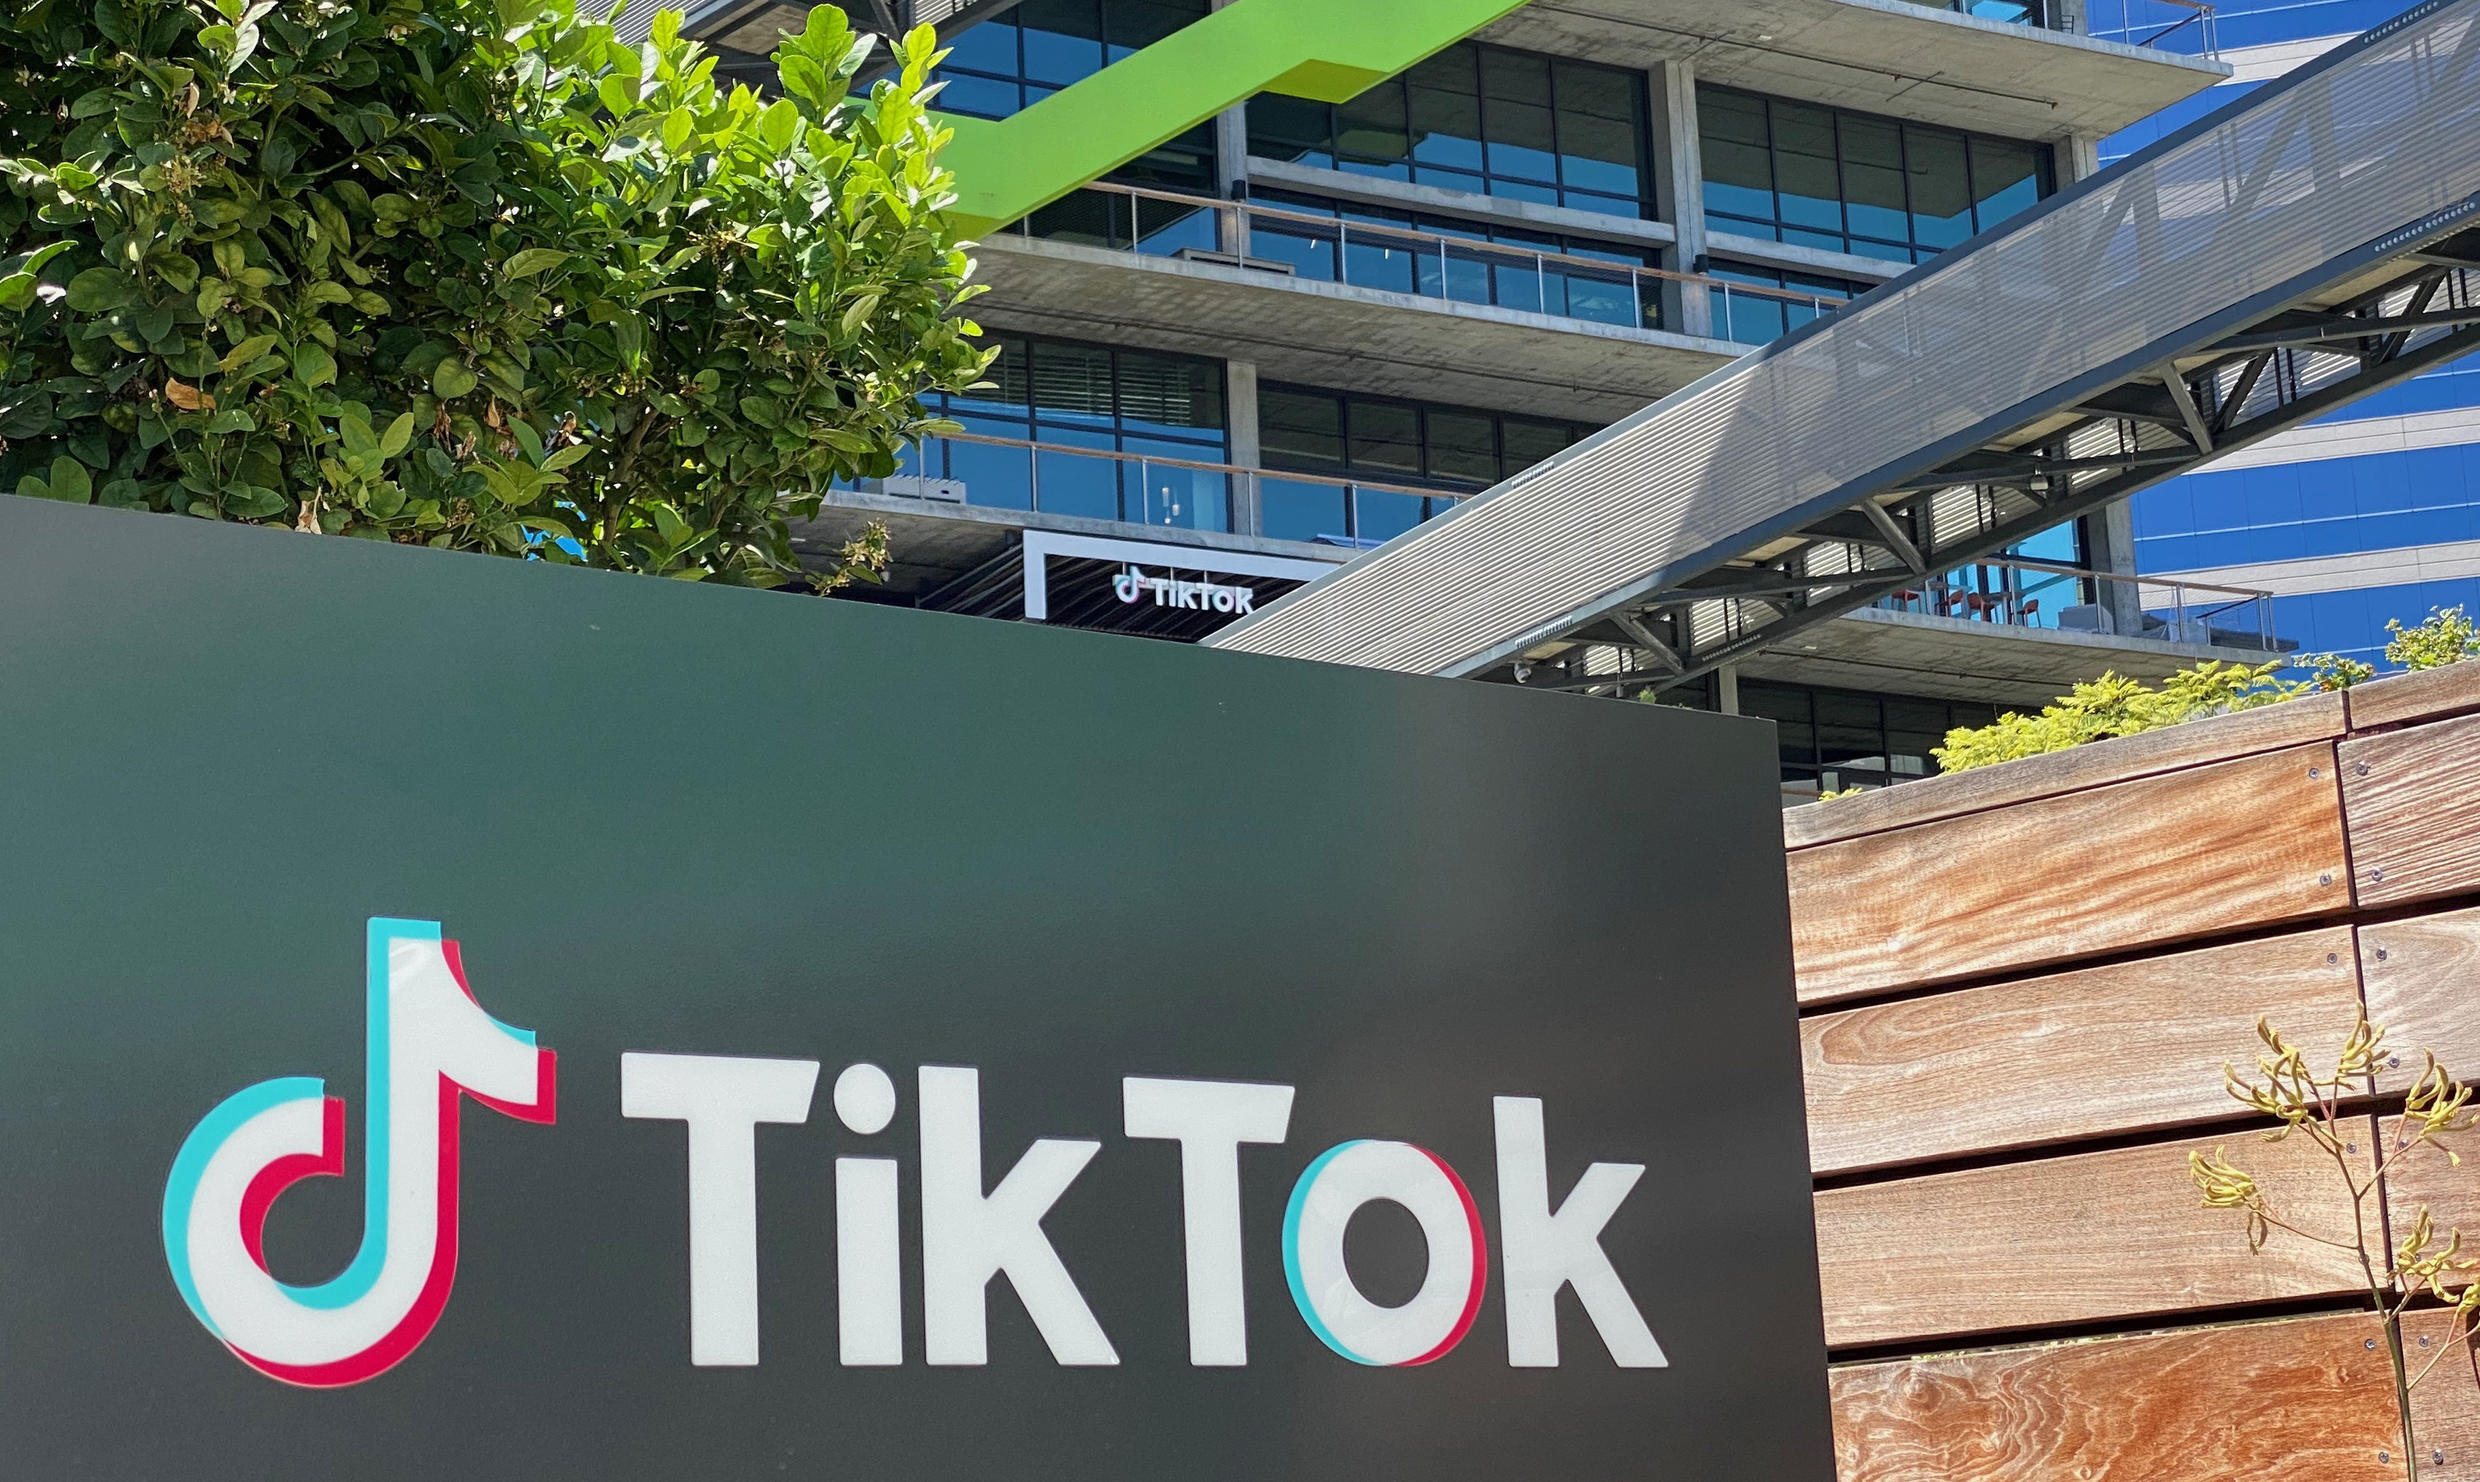 US President Donald Trump has issued executive orders giving TikTok parent ByteDance, which is based in China, deadlines to stop running the app in the US and divest TikTok